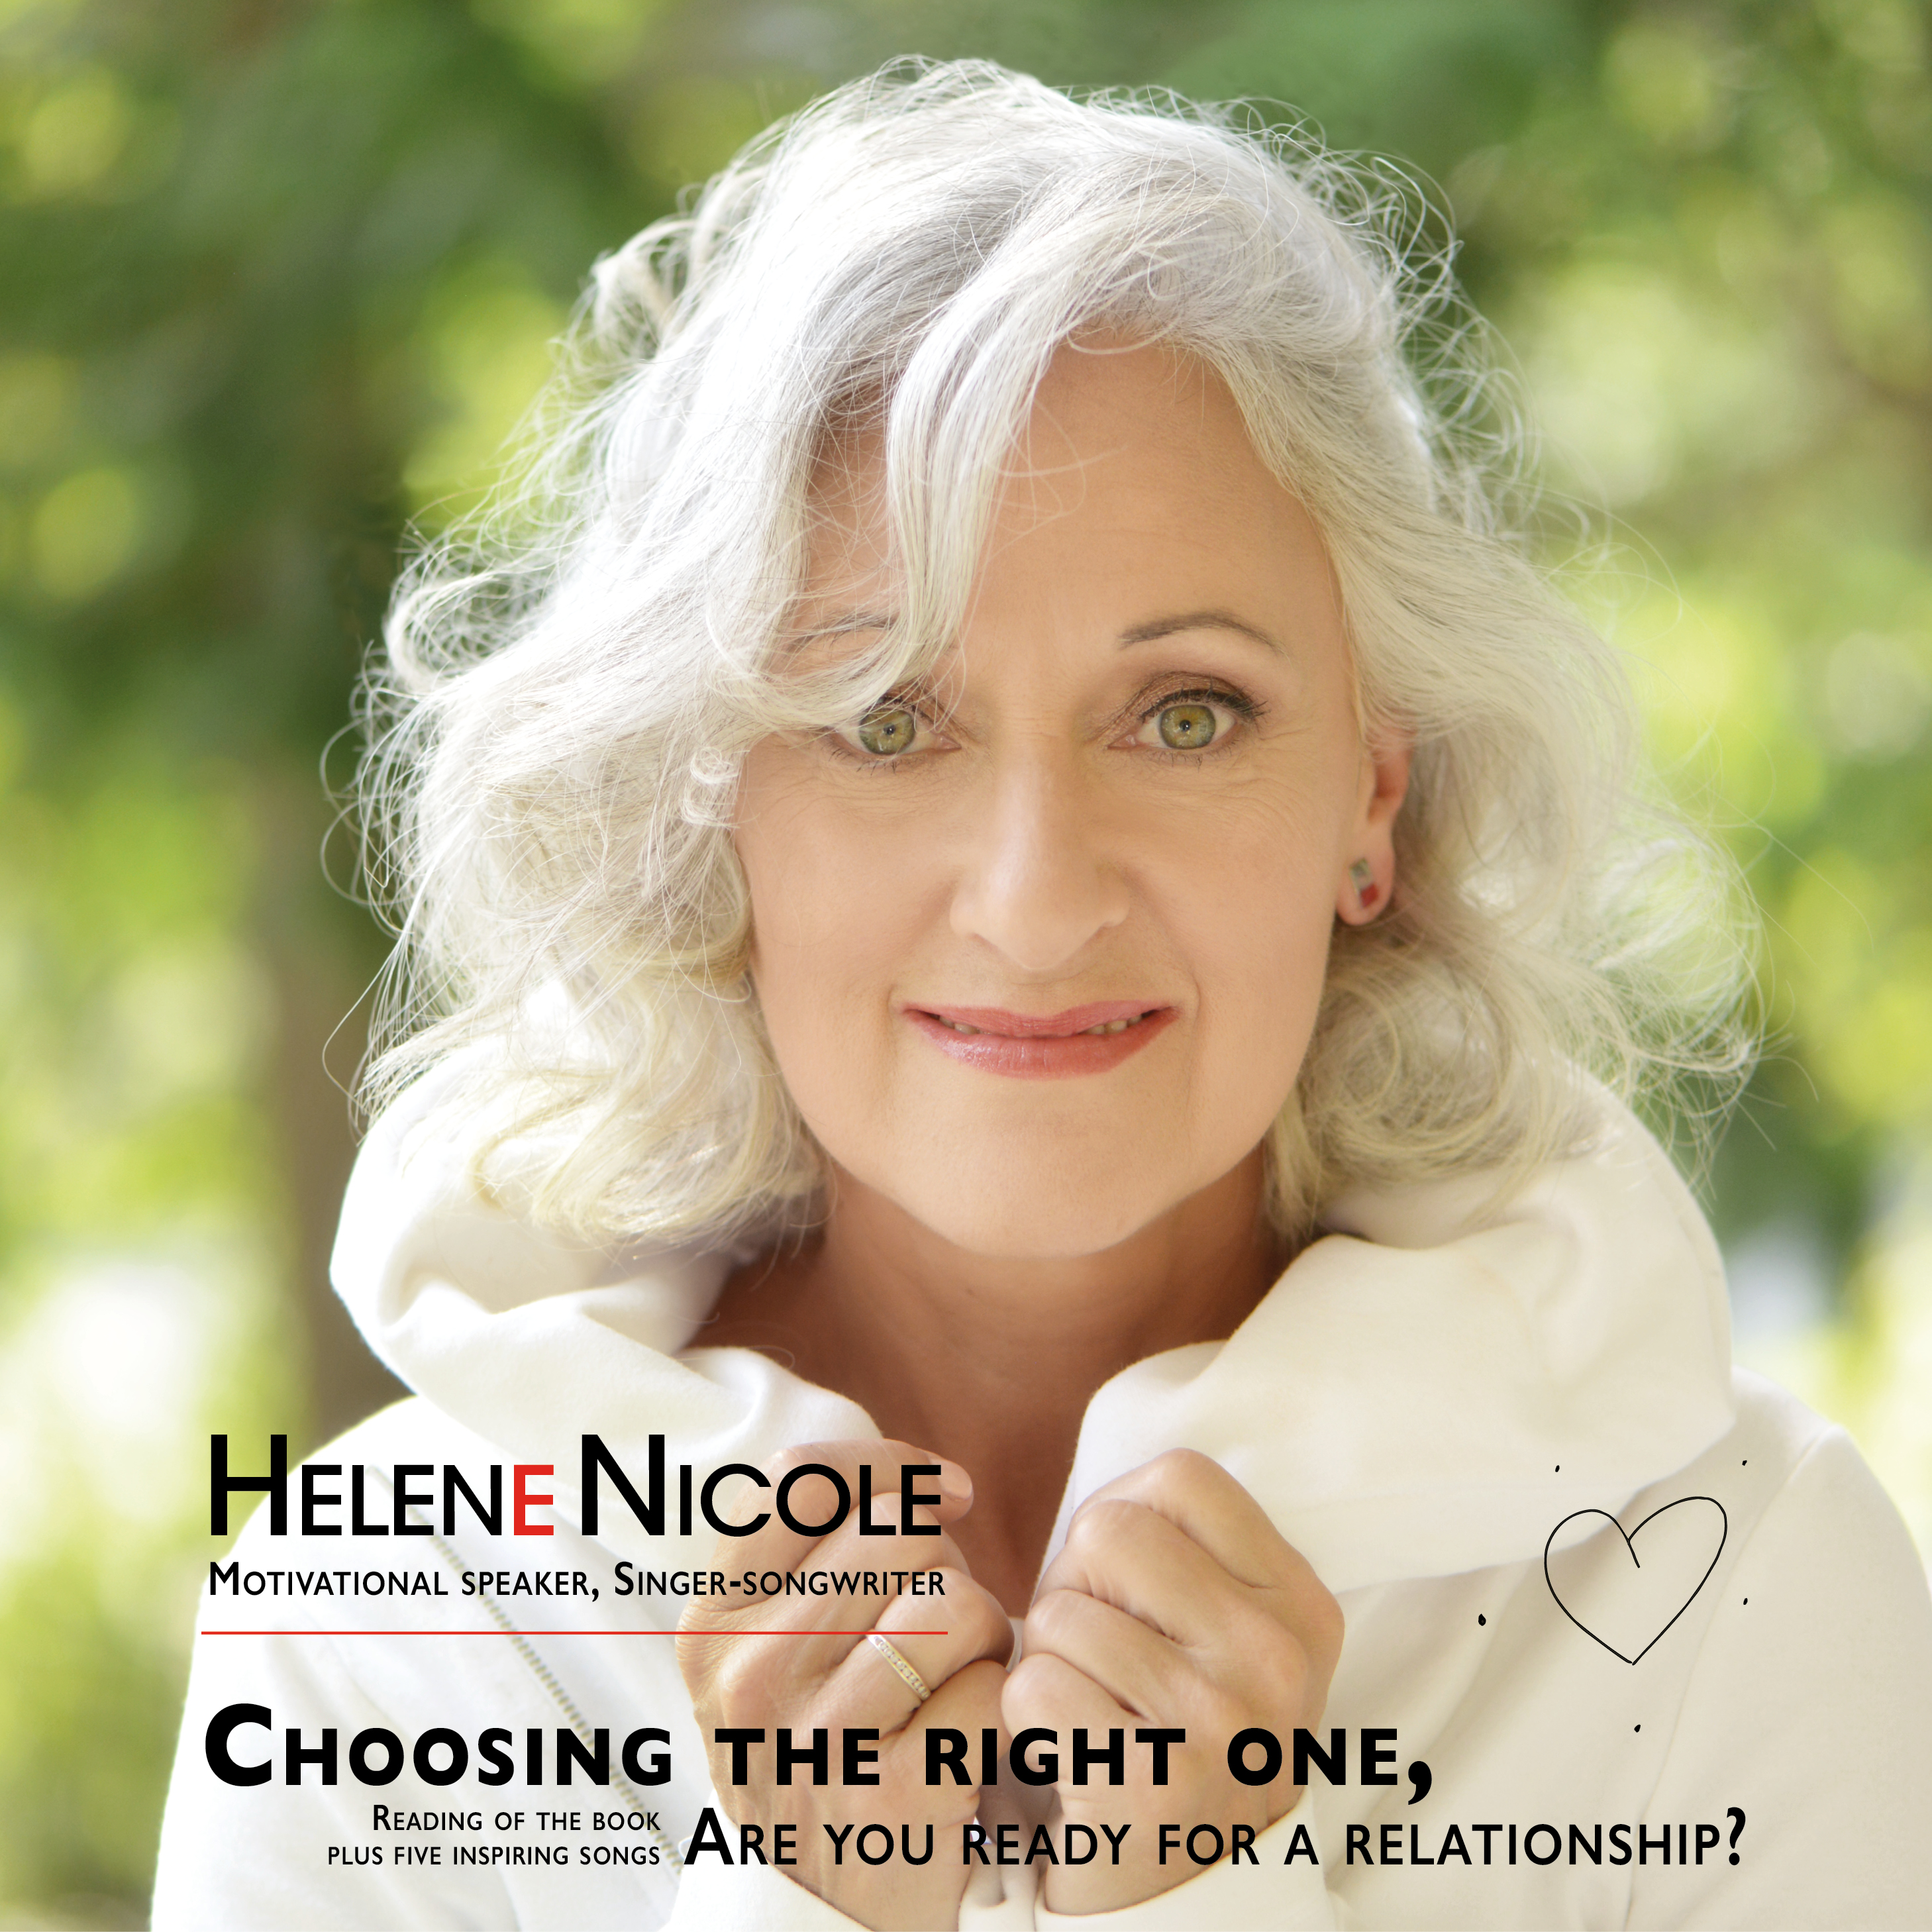 Cd cover featuring Hélène's head shot, white hair, white sweater. Cd title: Choosing the right one, audio book and cd.